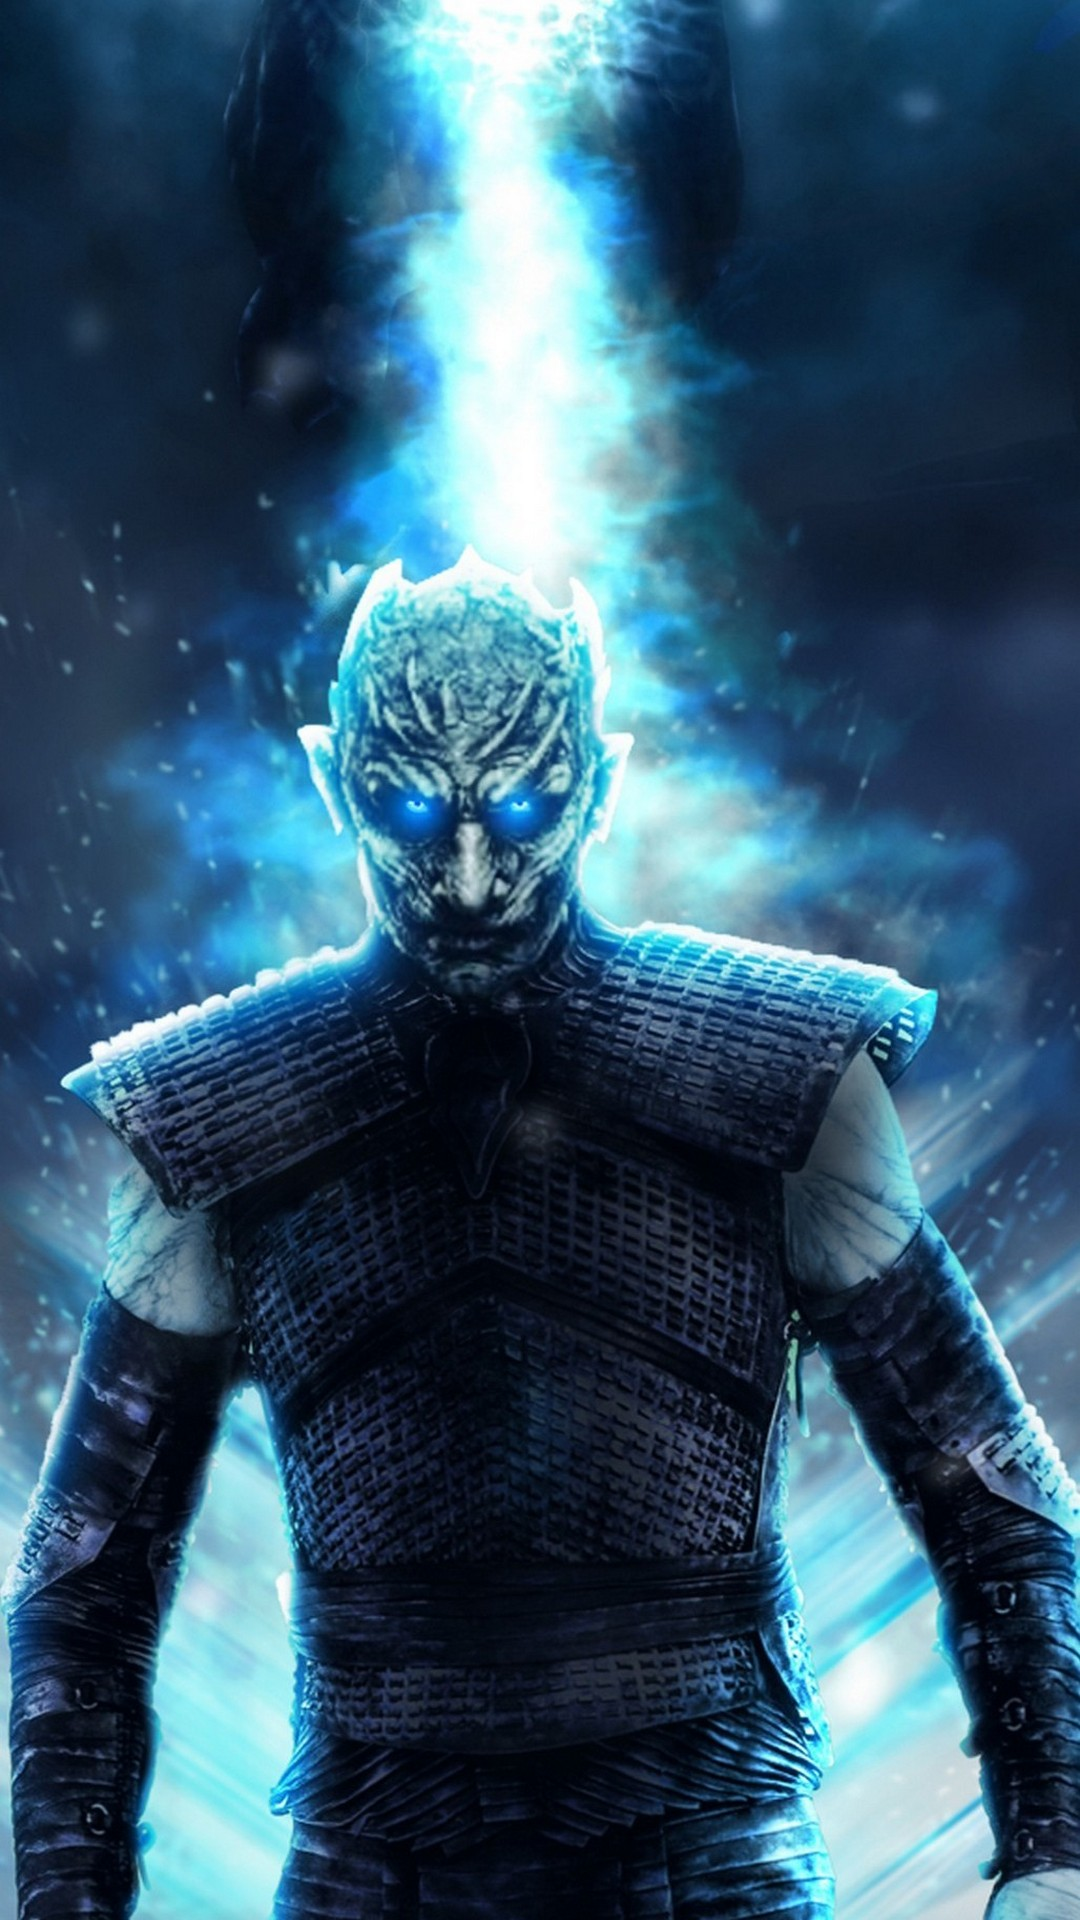 Wallpaper Iphone Game Of Thrones 8 Season With High-resolution - Game Of Thrones Night King Poster - HD Wallpaper